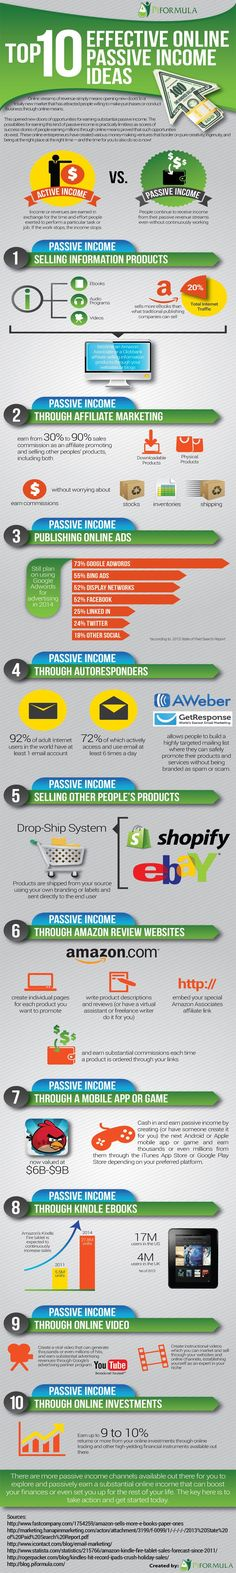 Top 10 Effective Online Passive Income Ideas #Infographic #IncomeIdeas